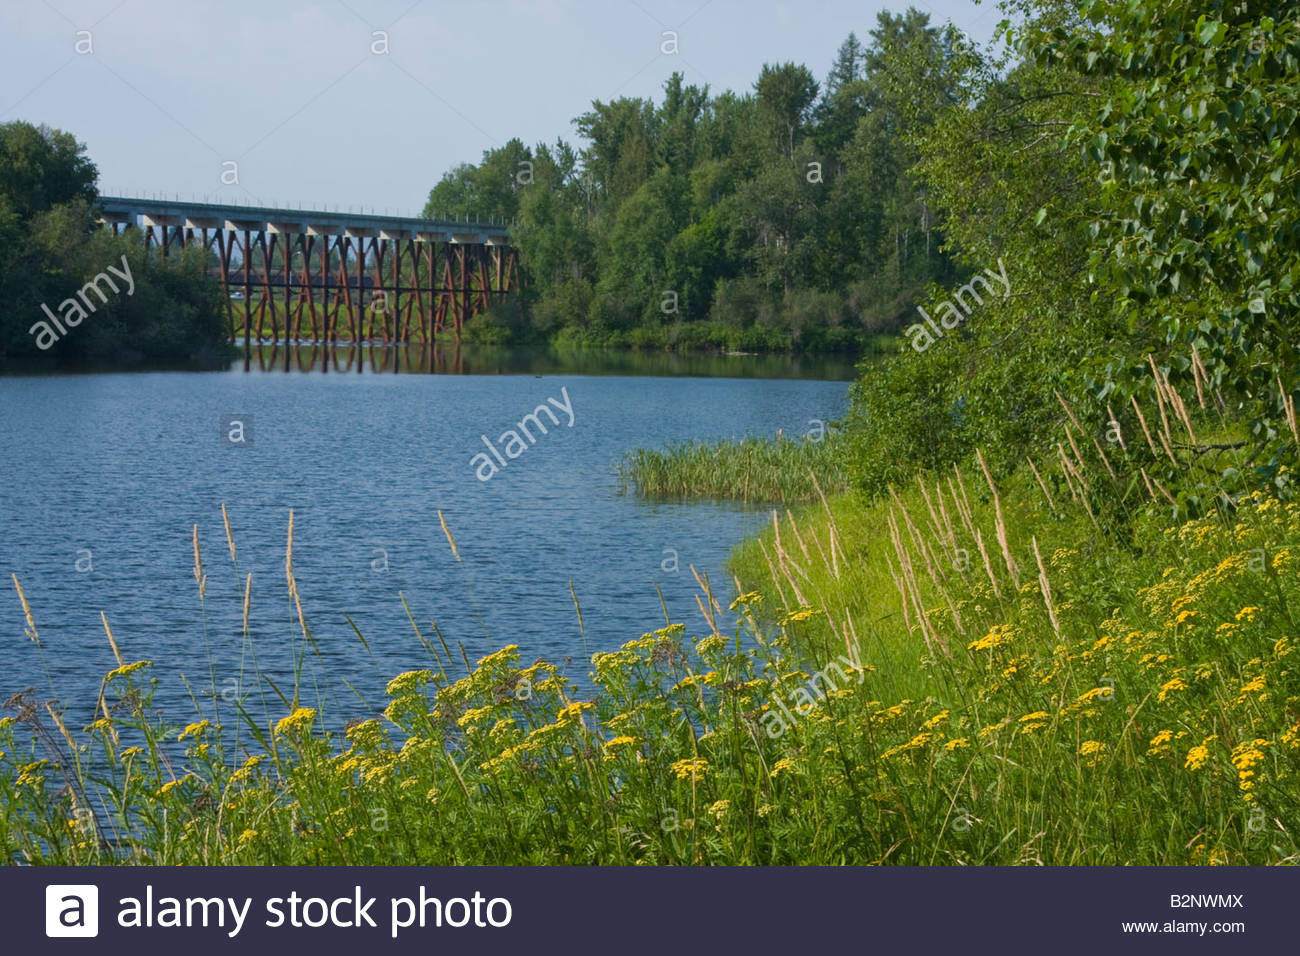 Railroad trestle over Sand Creek North of Sandpoint Idaho - Stock Image